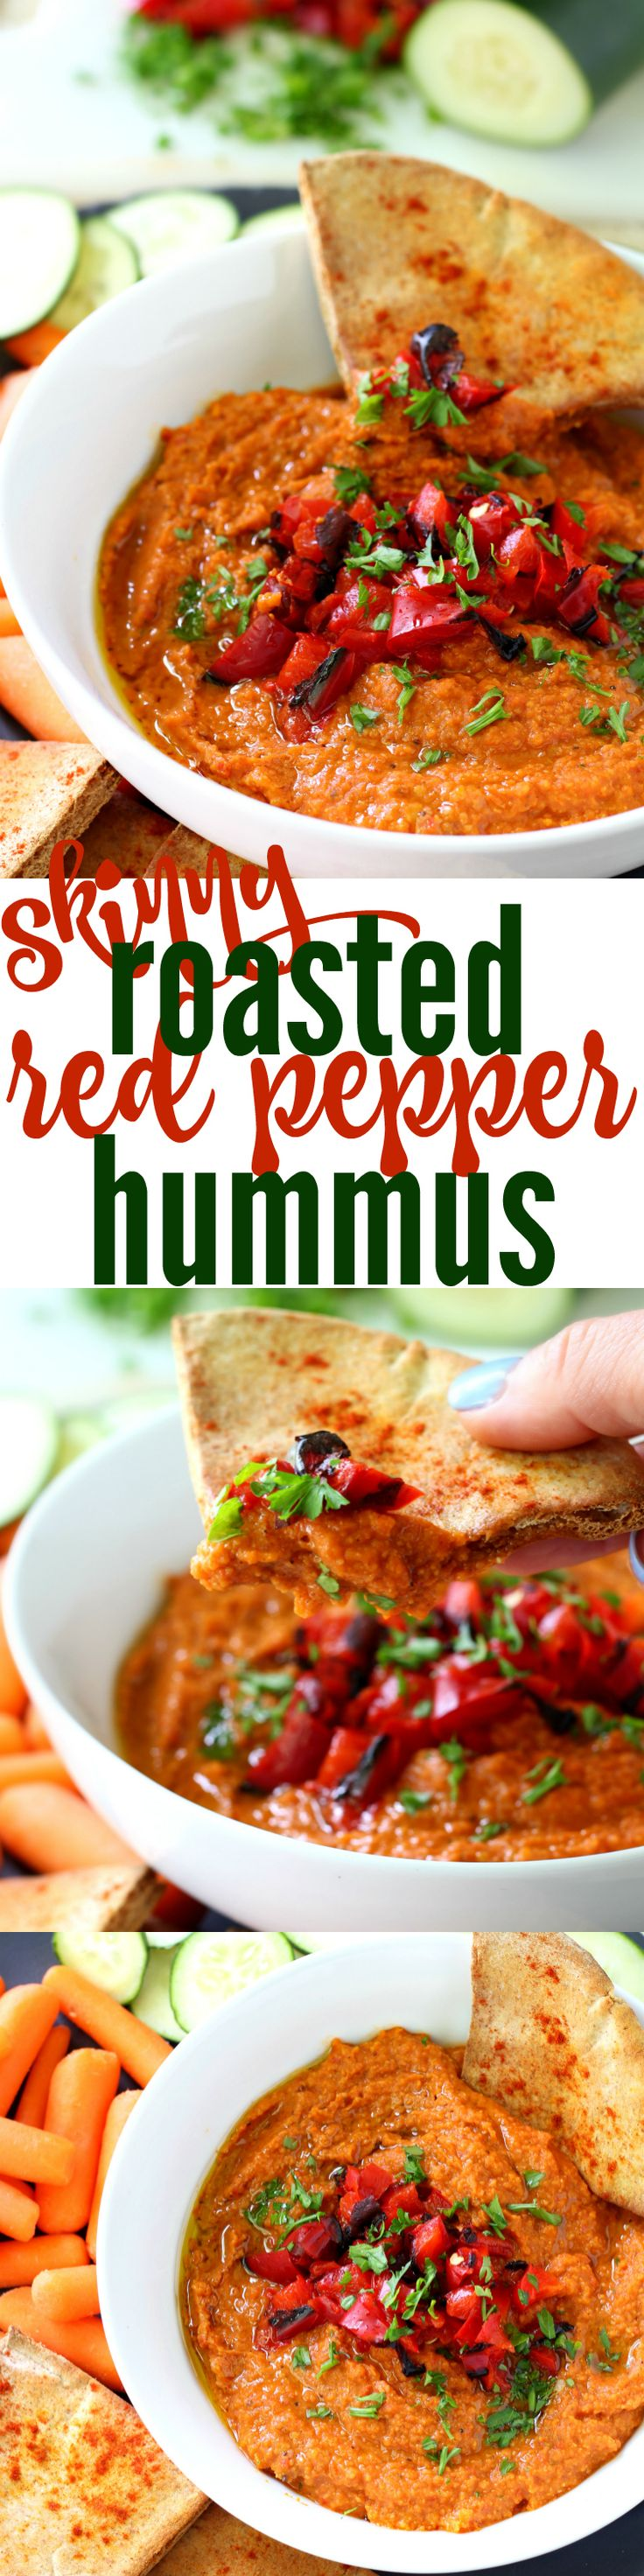 Skinny Roasted Red Pepper Hummus - this hummus is addictive! Amazing flavor, easy to make and way better than store bought. (GF, Vegan & low-calorie)